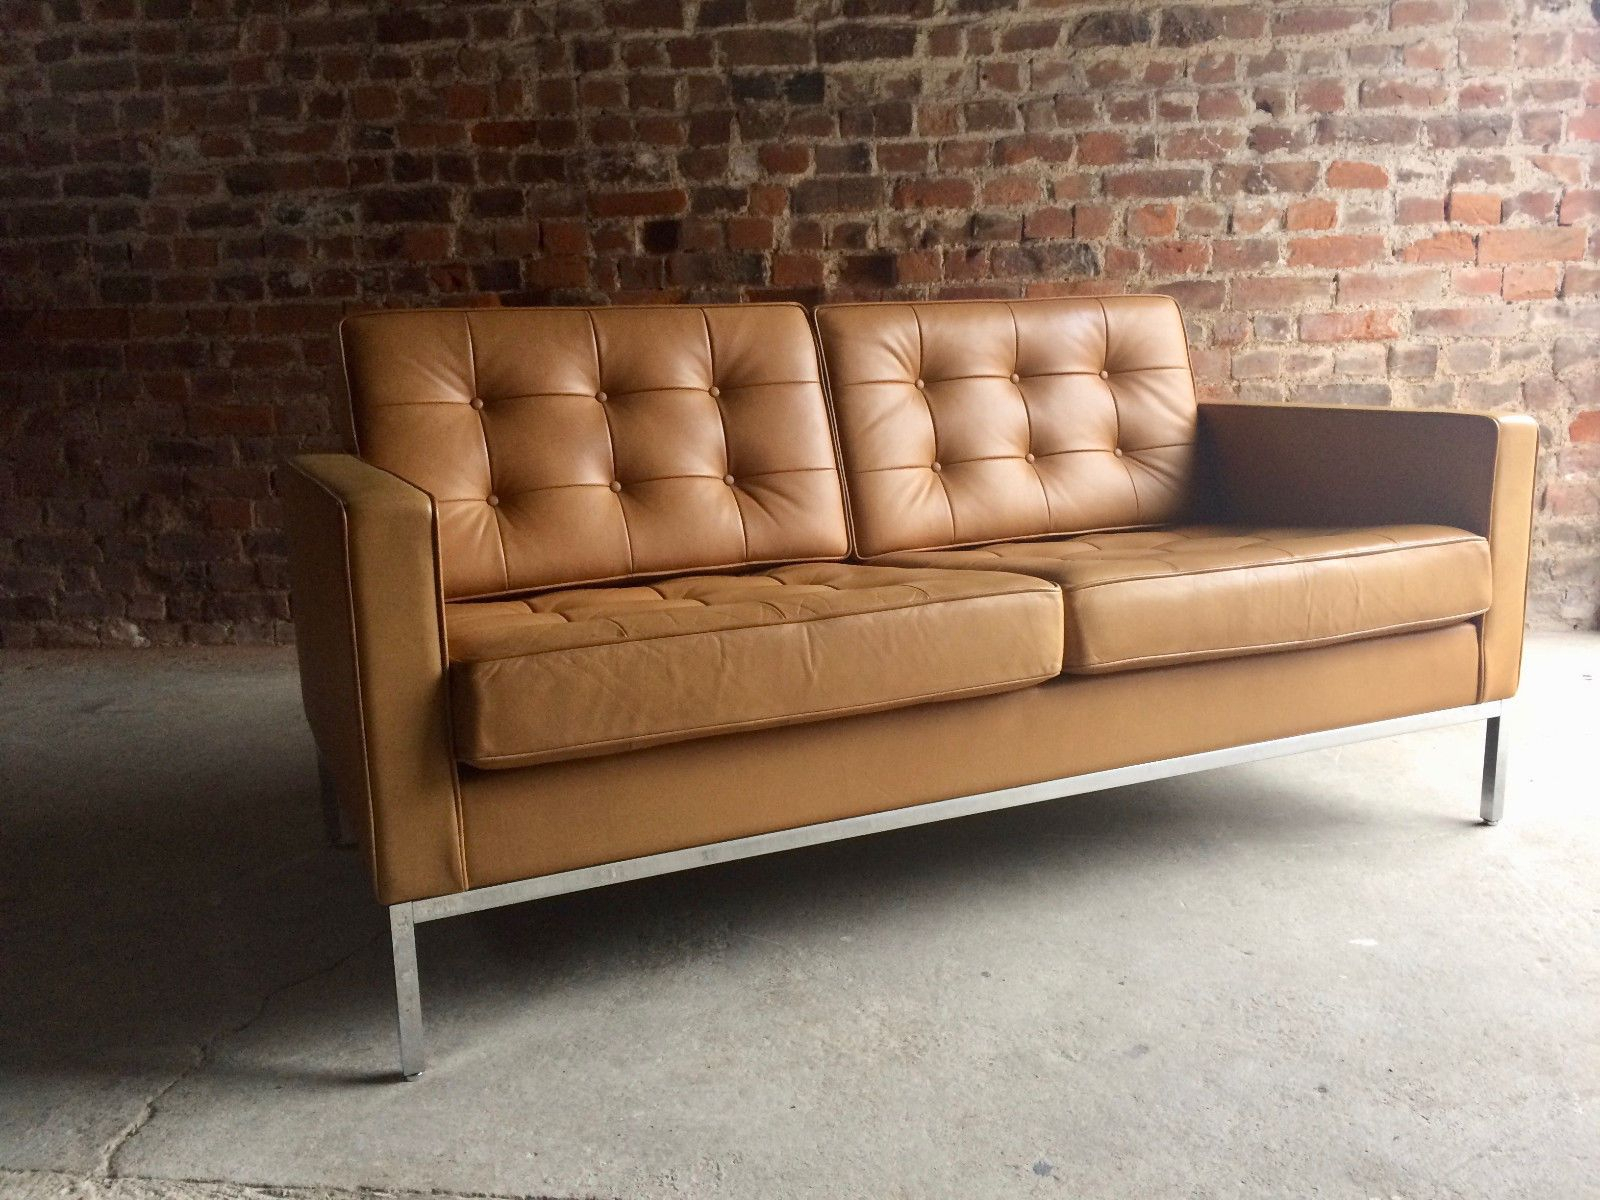 Vintage 2 Seater Leather Sofaflorence Knoll For Knoll Regarding Florence Knoll Leather Sofas (View 2 of 15)